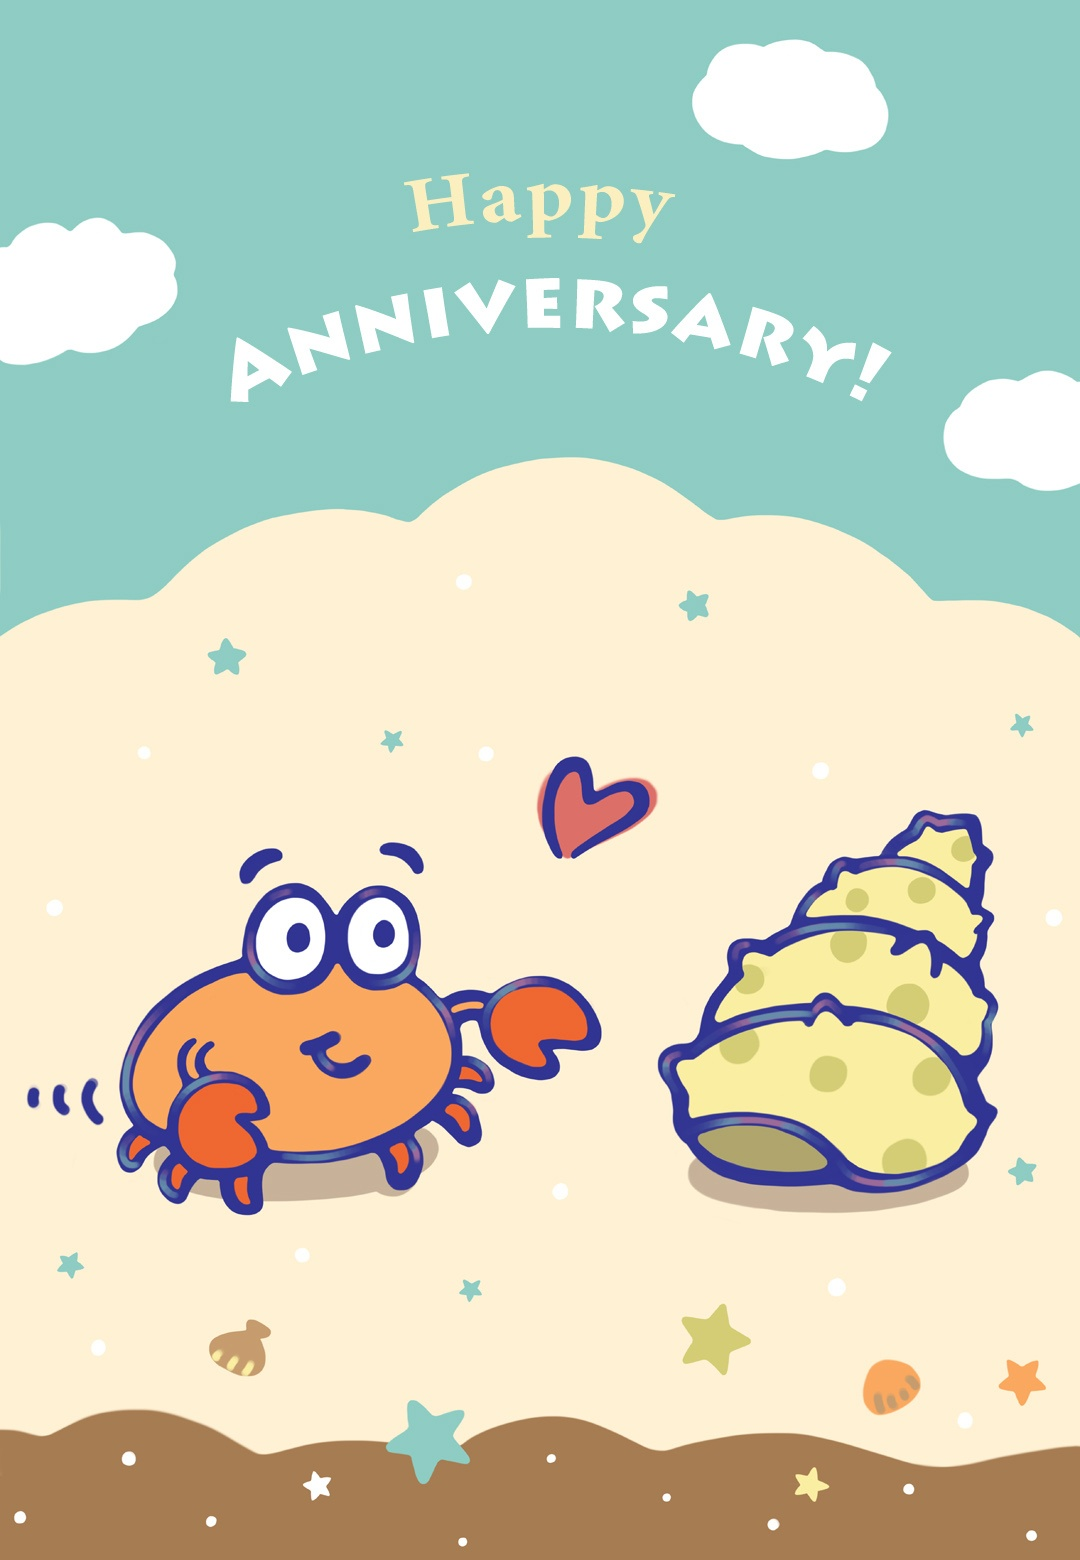 When I Found You - Happy Anniversary Card (Free) | Greetings Island - Free Printable Anniversary Cards